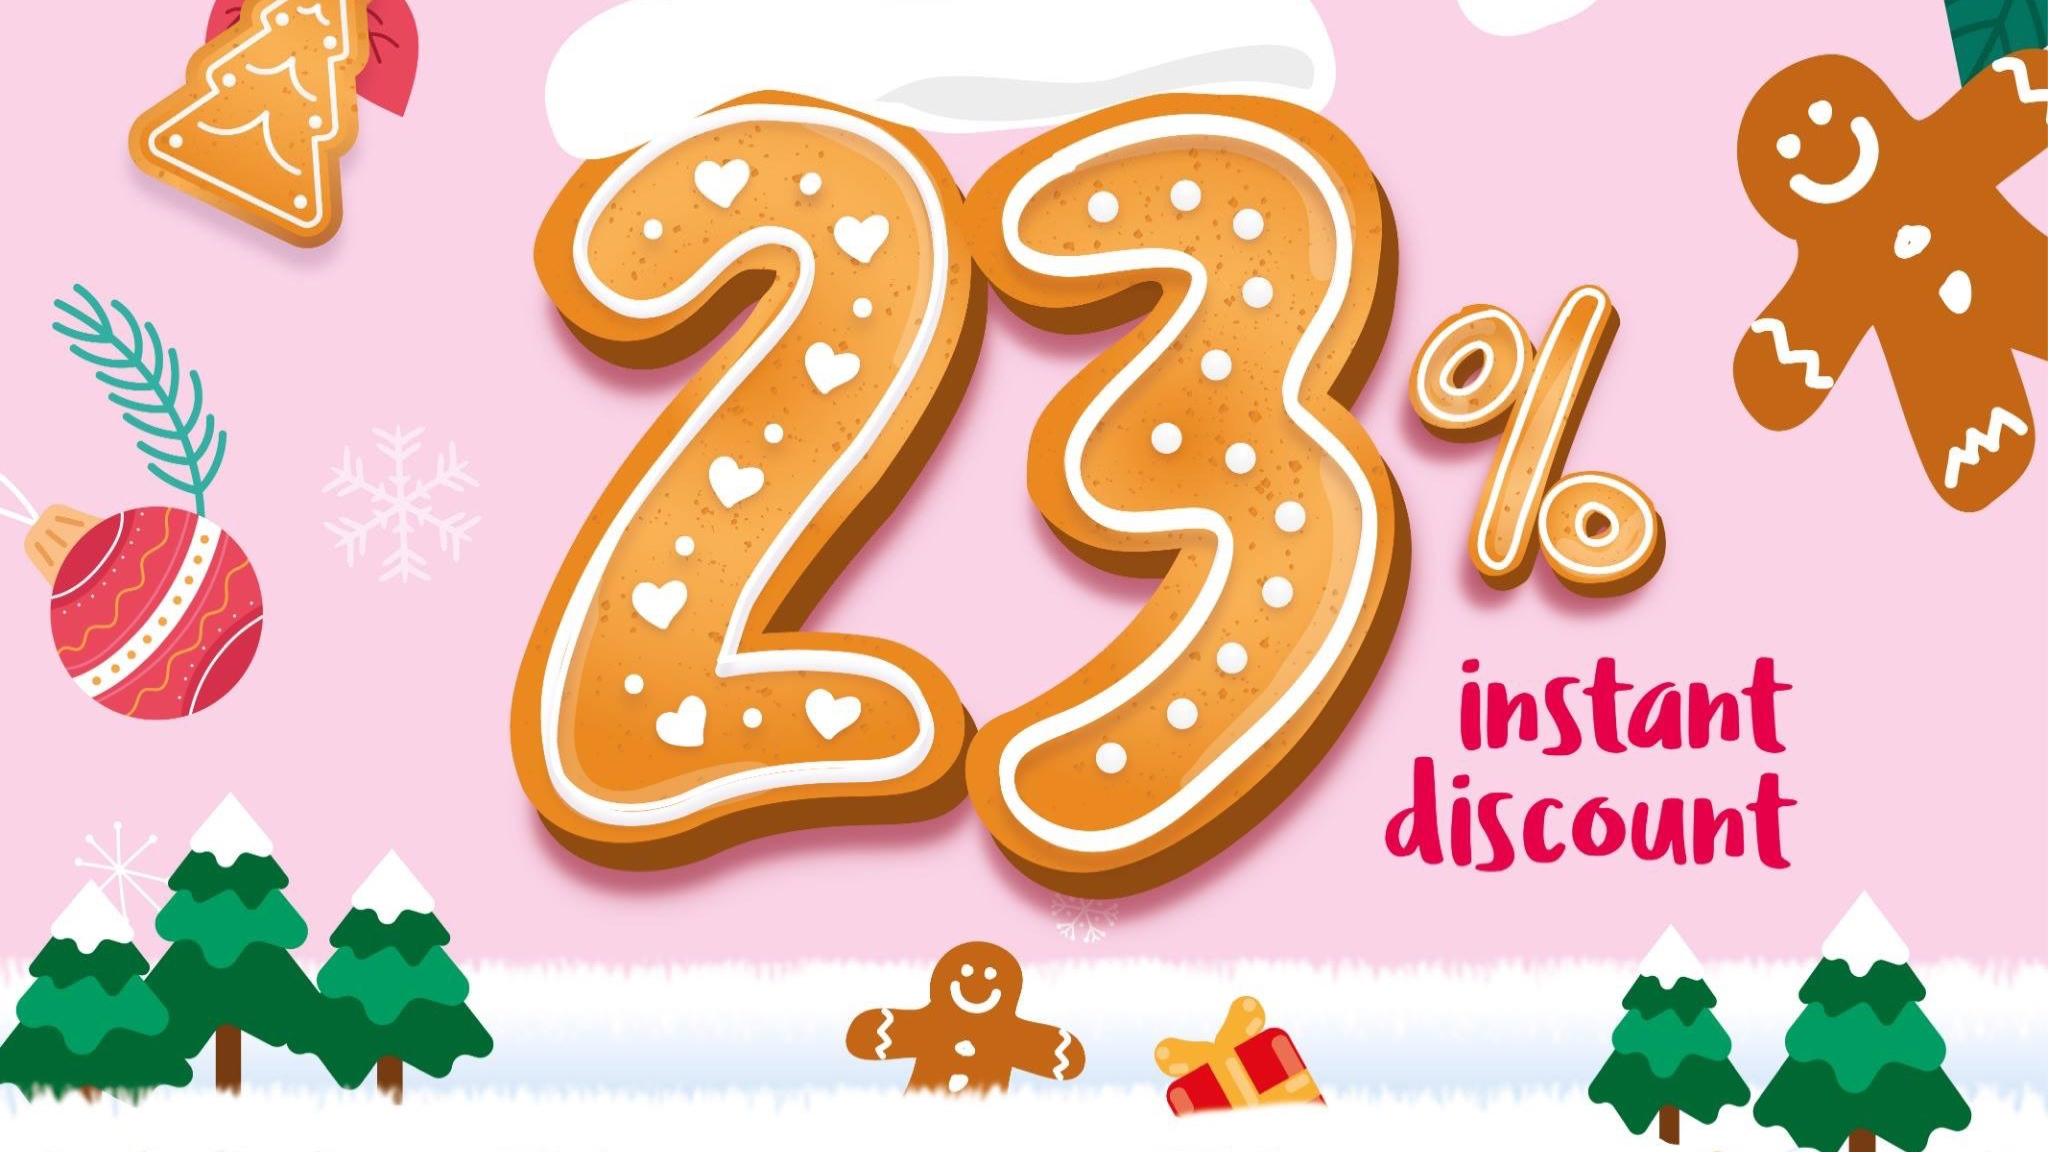 Sinopec SG 23% Instant Discount at Yishun Station 13-16 Dec 2019